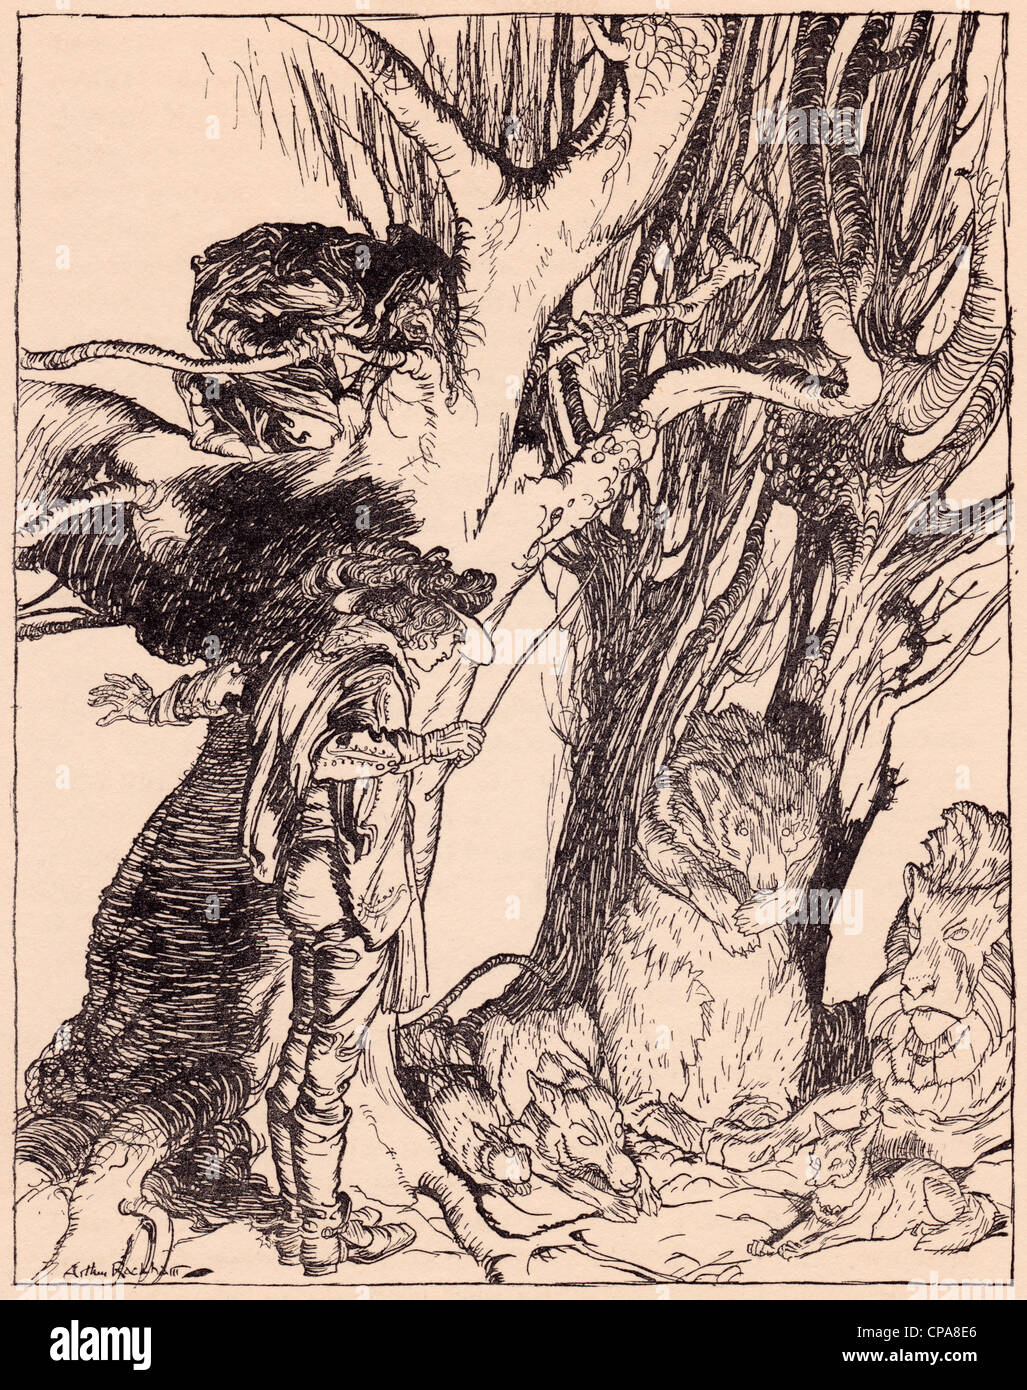 Instantly they lay still all turned into stone. Illustration by Arthur Rackham from Grimm's Fairy Tale, The - Stock Image